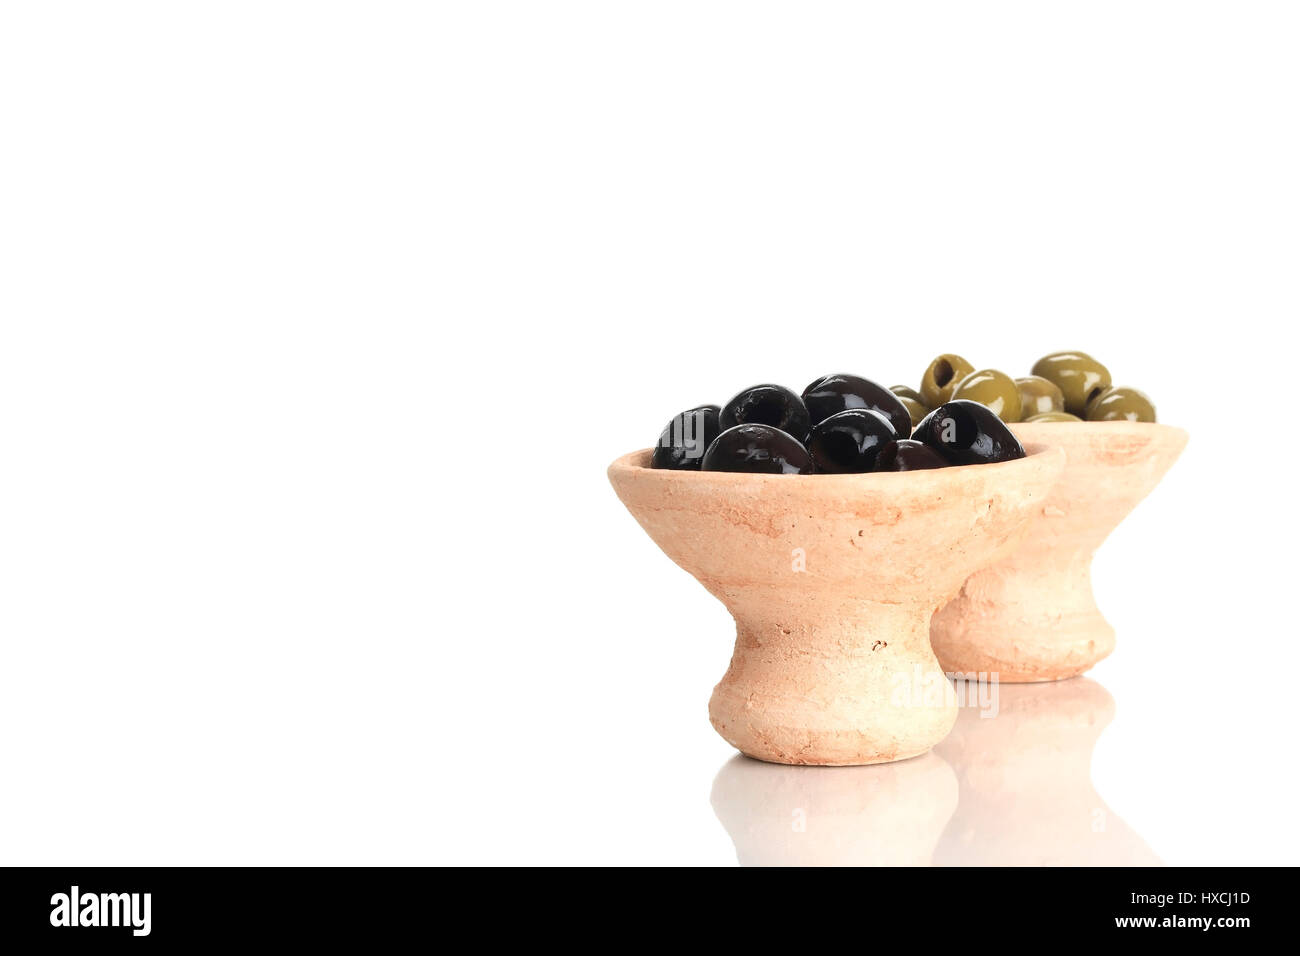 Dished Plates With Olives Schälchen Mit Oliven Stock Photo